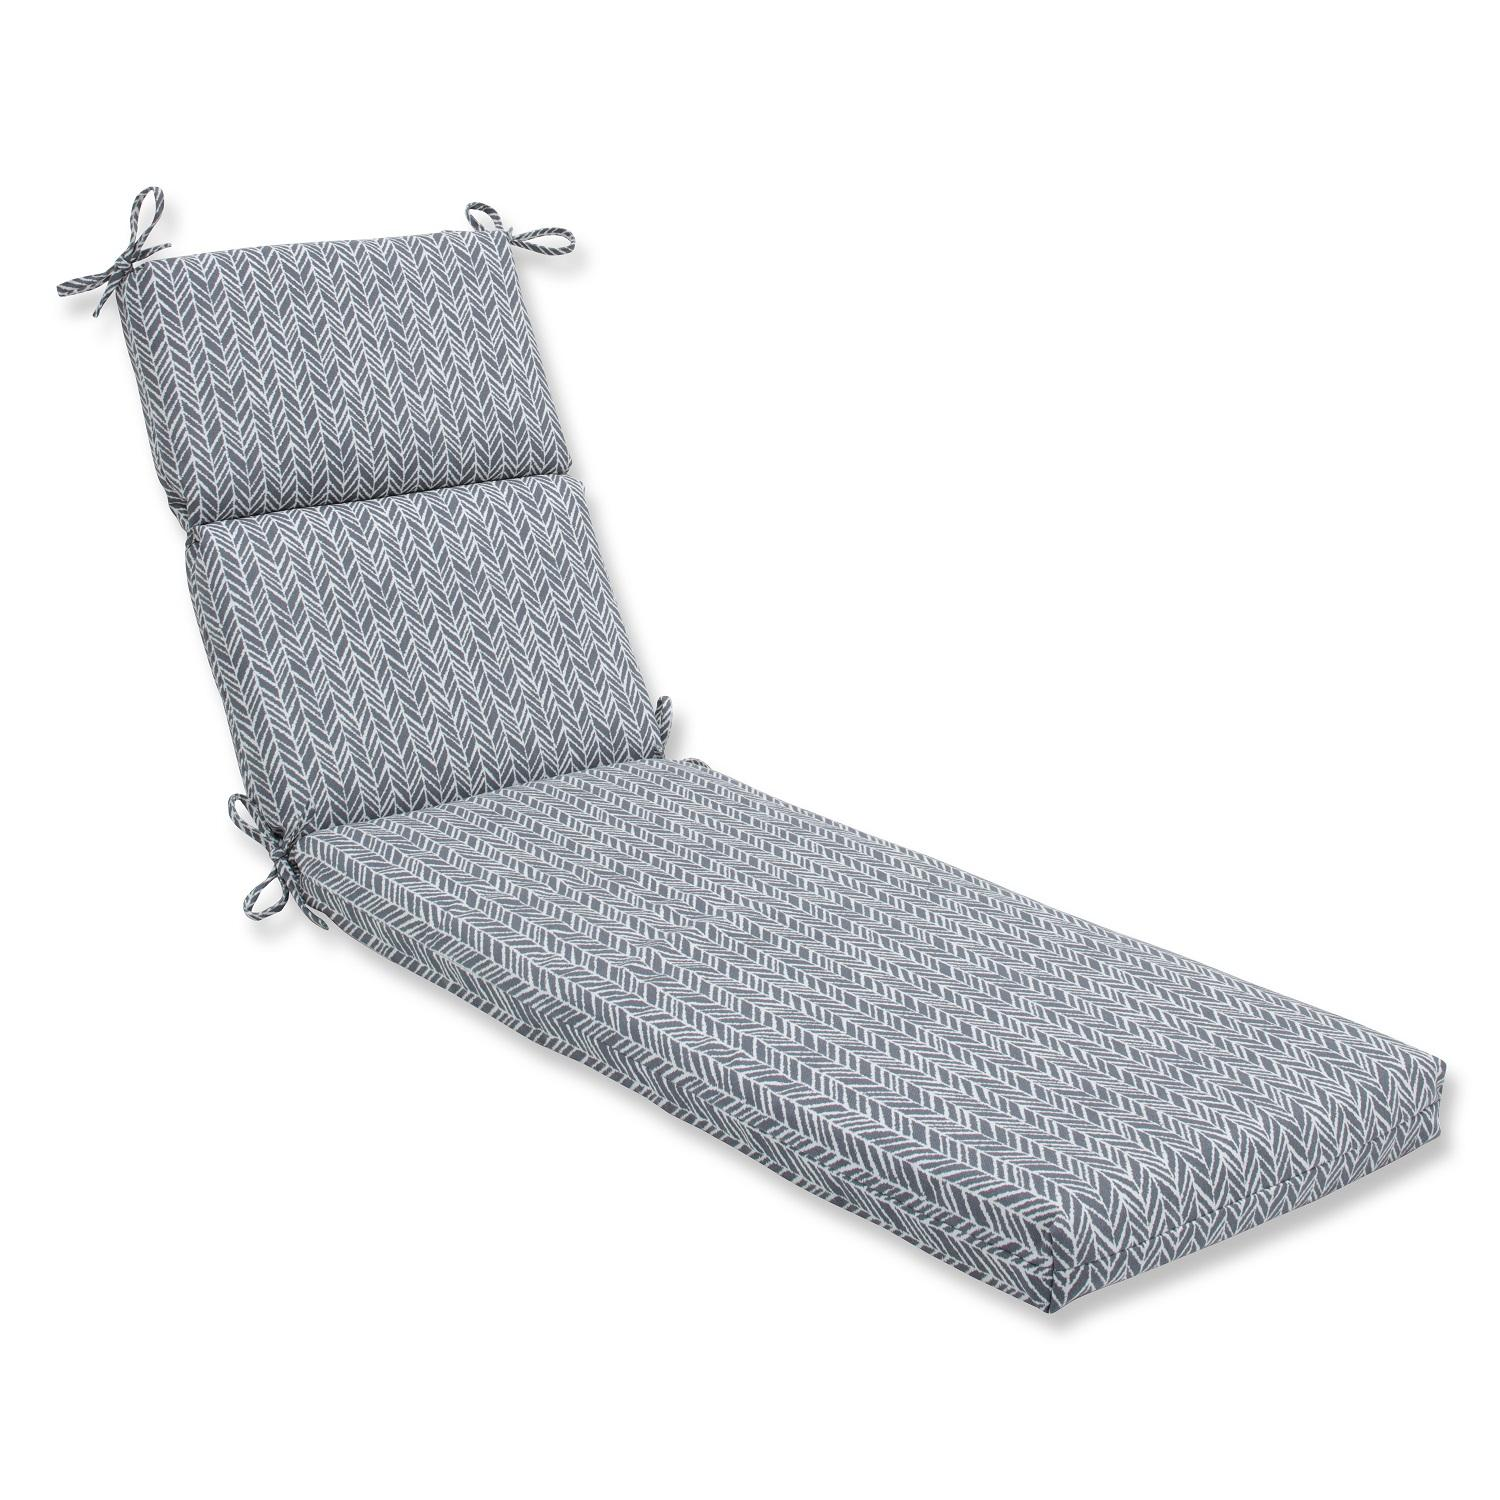 "72.5"" Simplistic Nature Stone Gray and Pearly White Chaise Lounge Cushion"